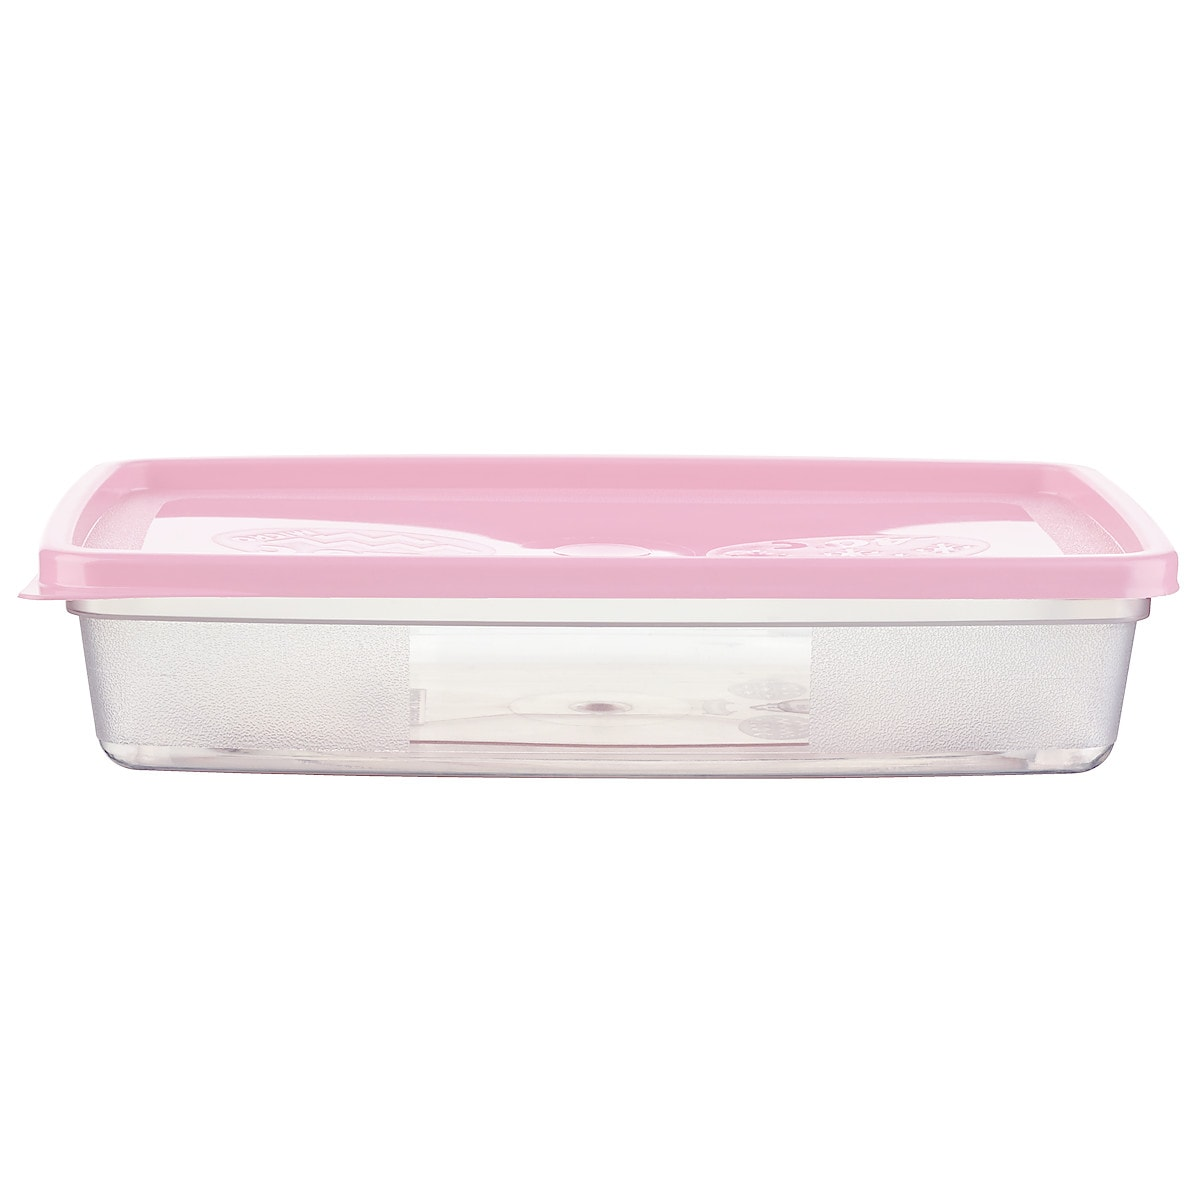 0.4 L Freezer and Microwave Containers, 3 pack